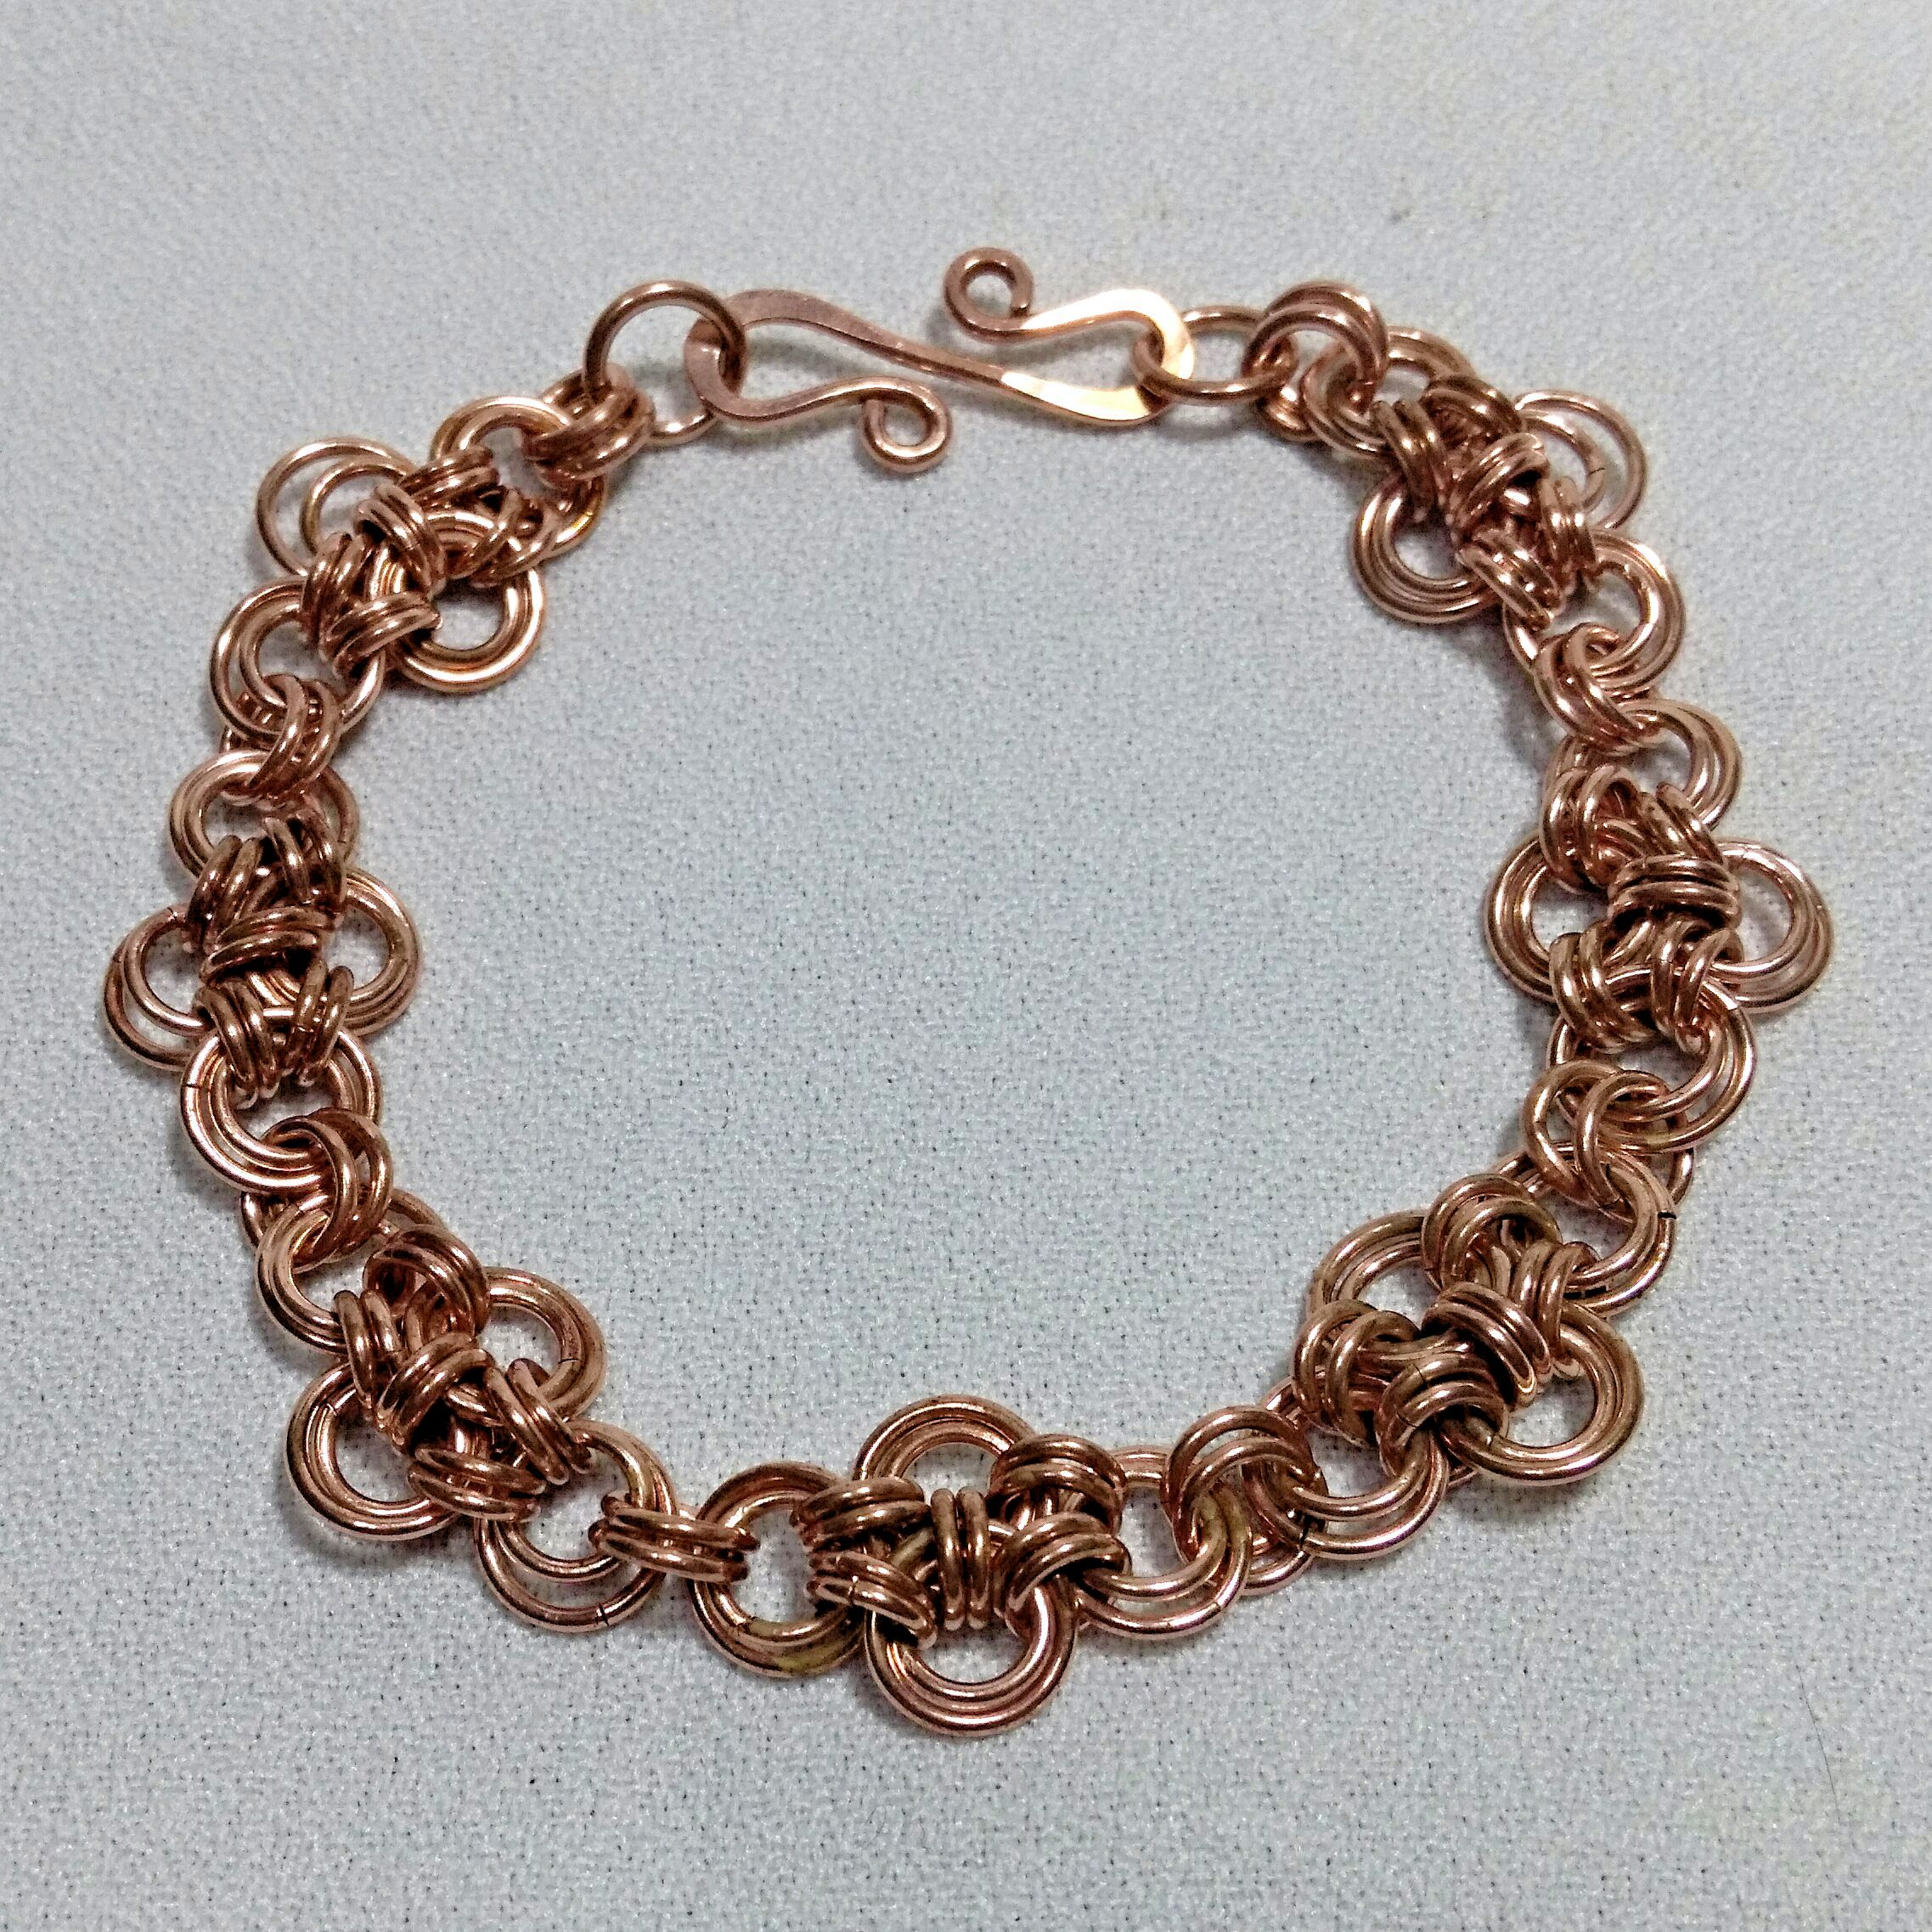 Anese Cross Chain Maille Solid Copper Bracelet 10773